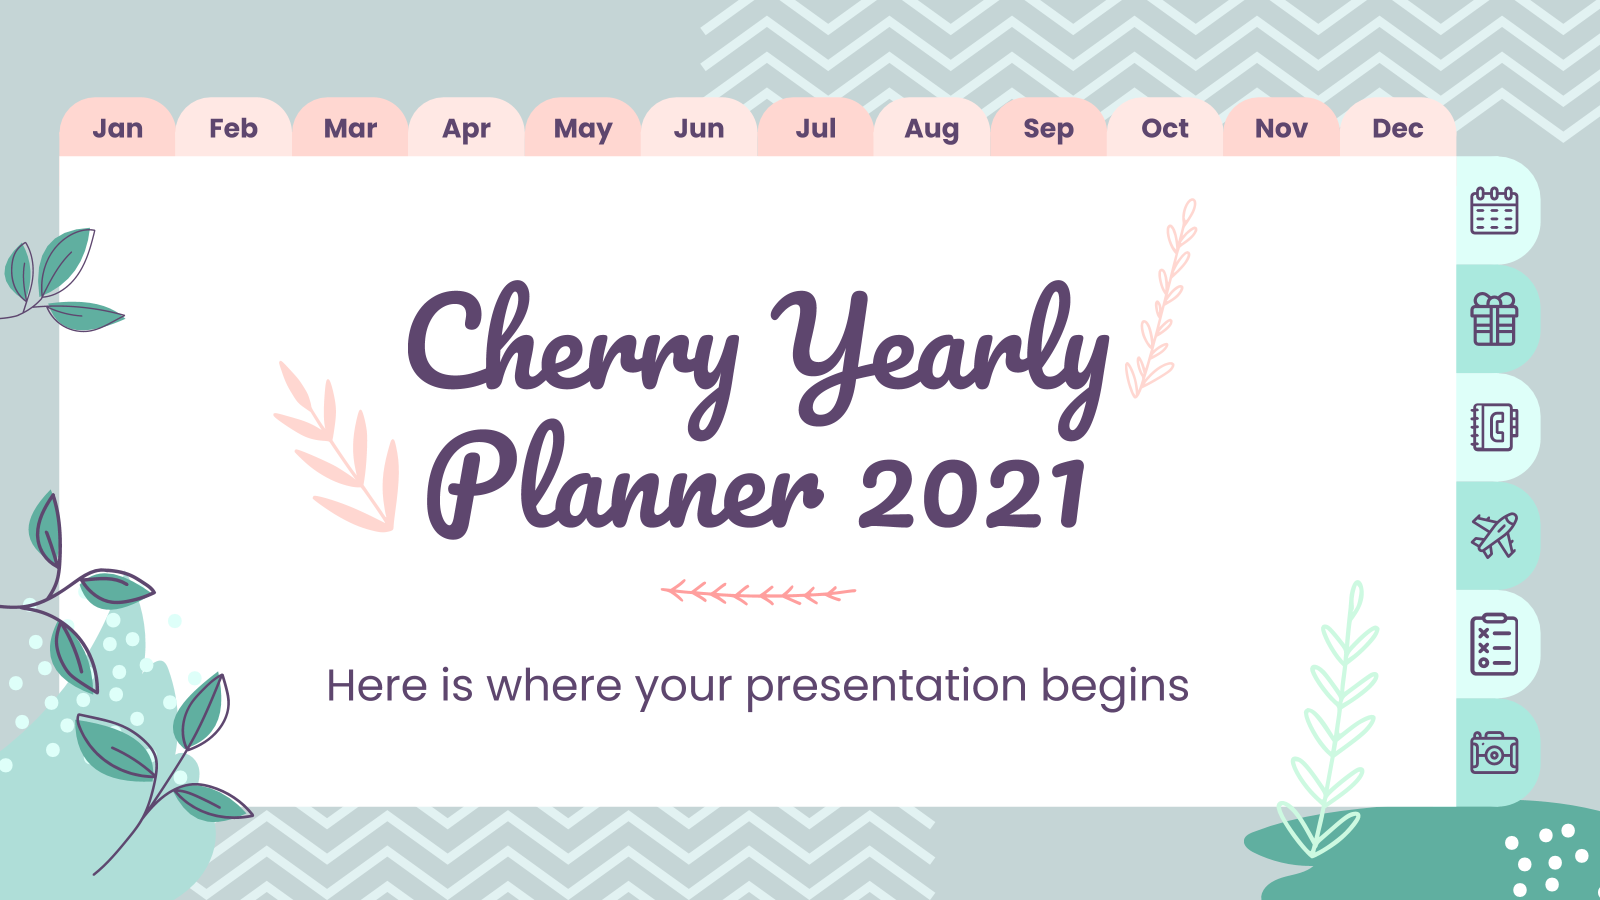 Cherry Yearly Planner 2021 presentation template